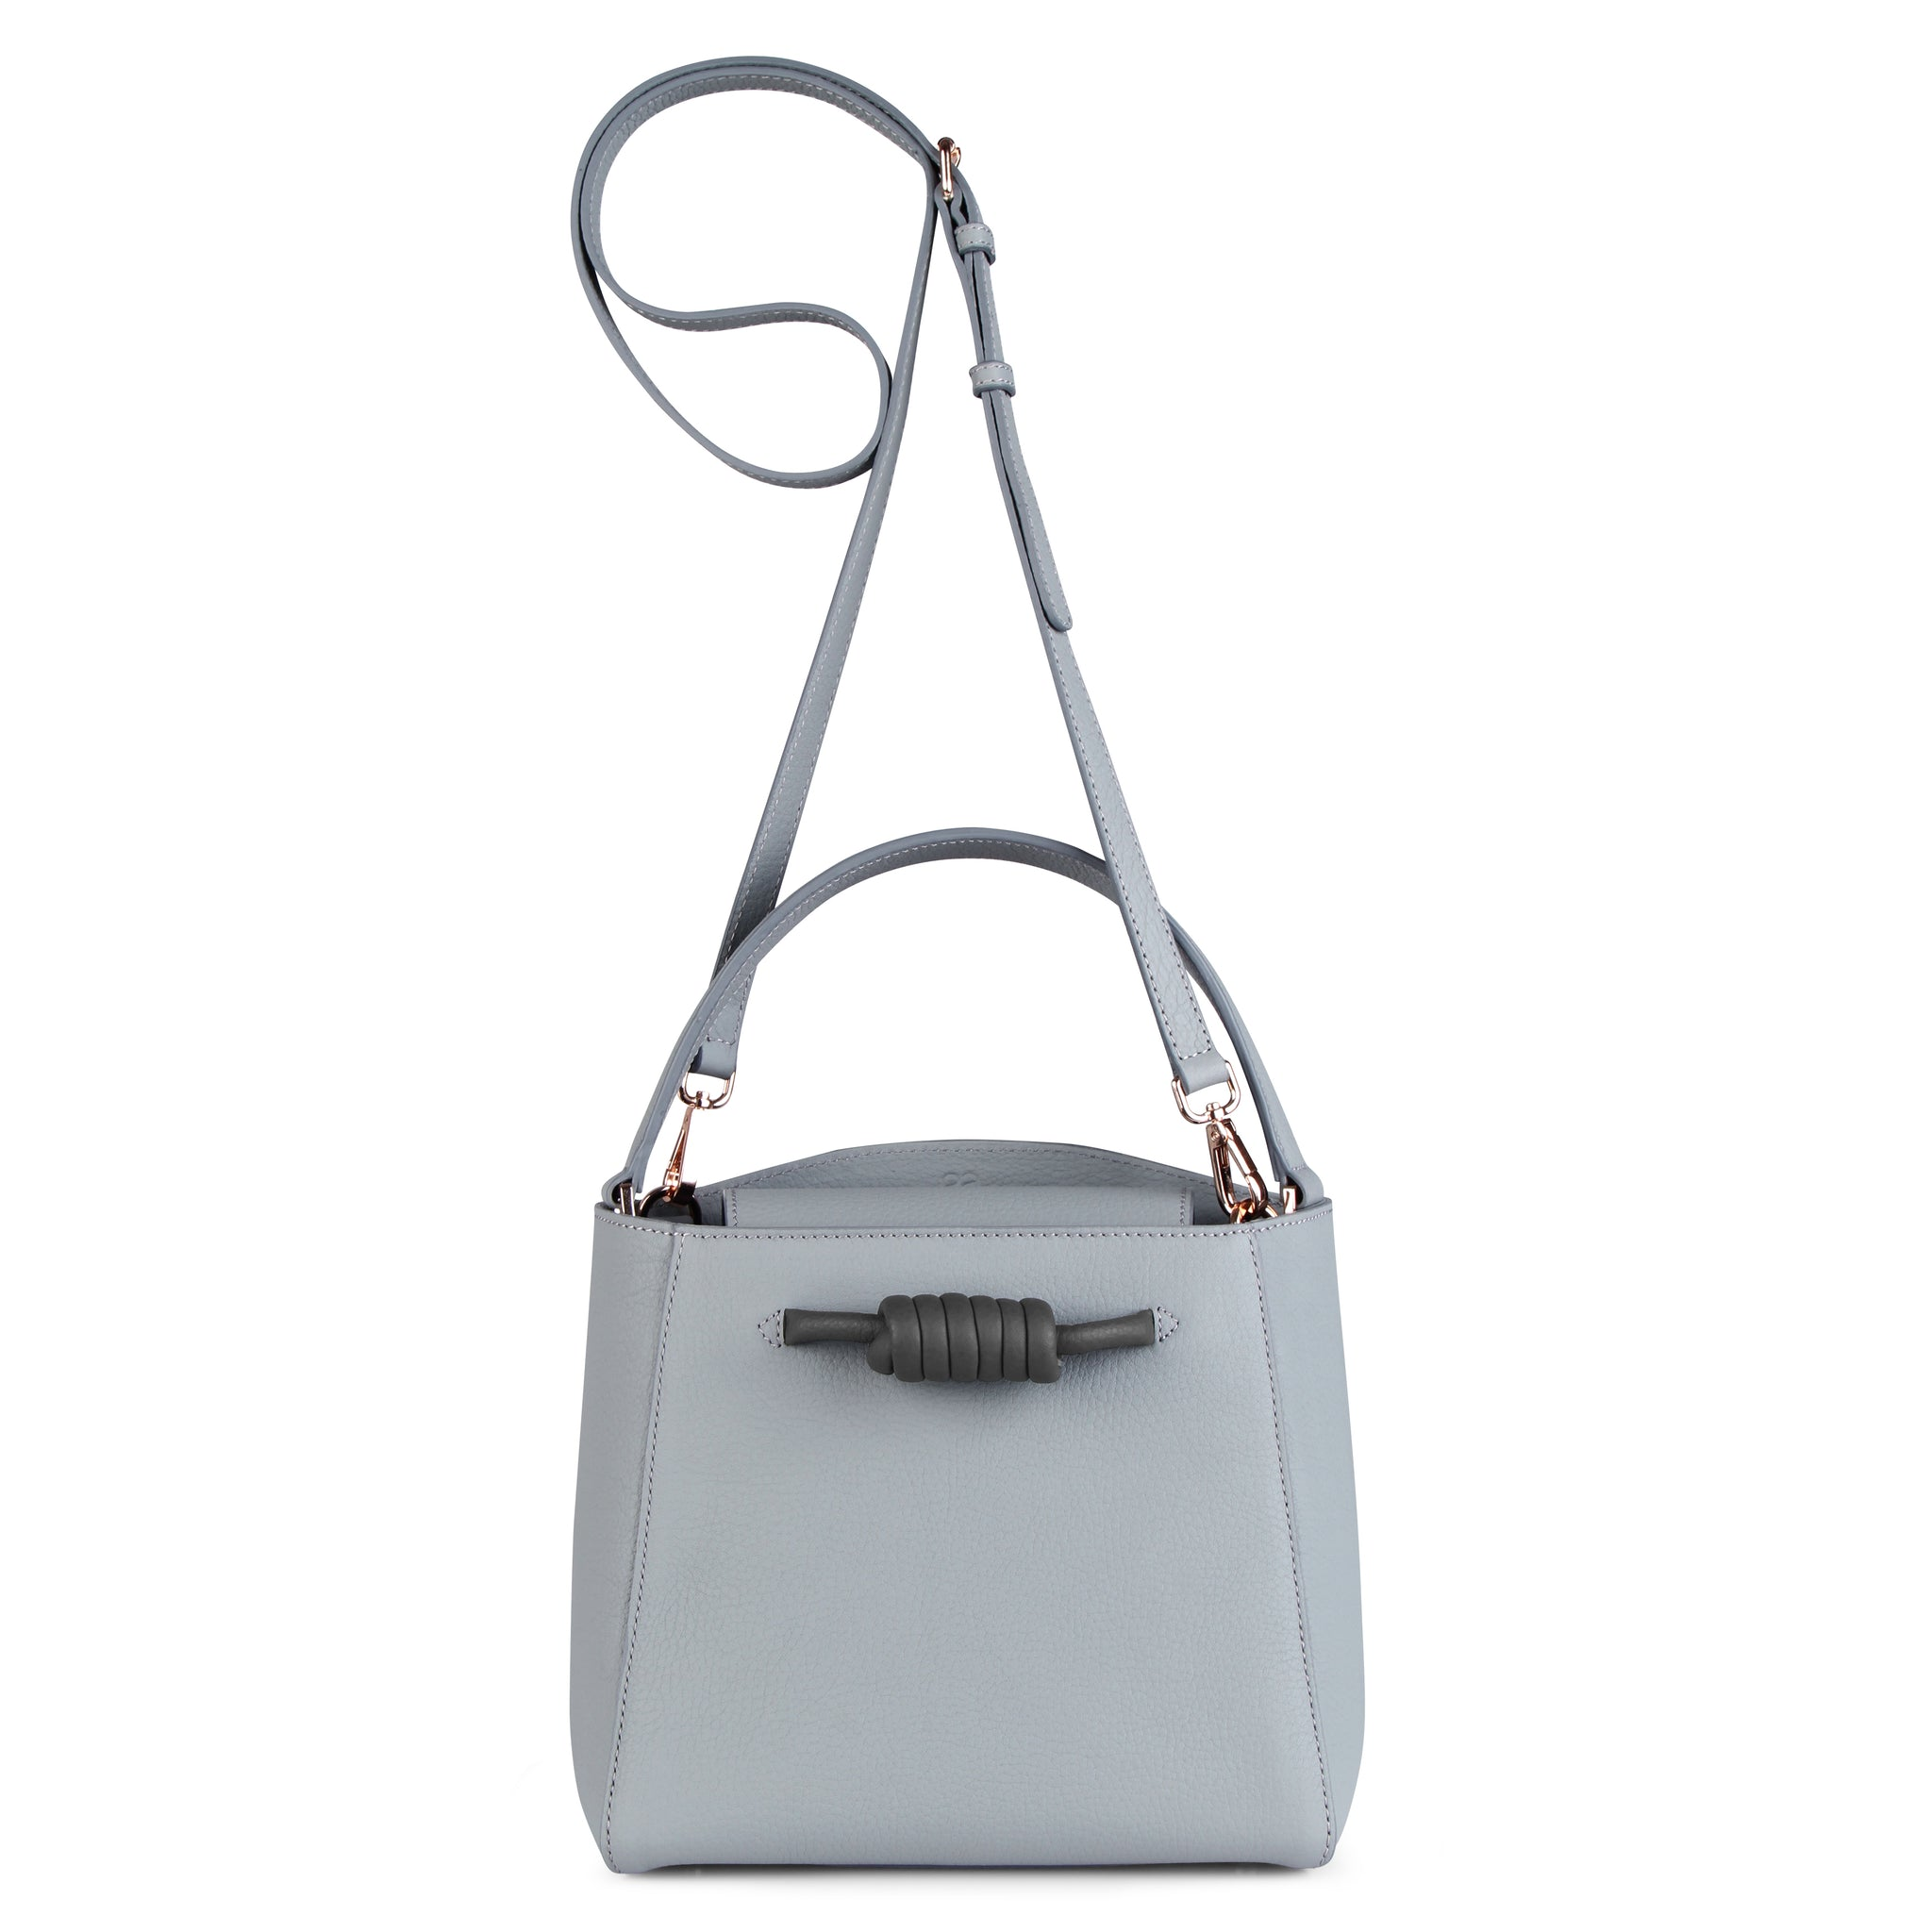 A medium size grey convertible leather top handle tote bag with a knot detail in front that could be used as a handheld mini tote bag, front image.